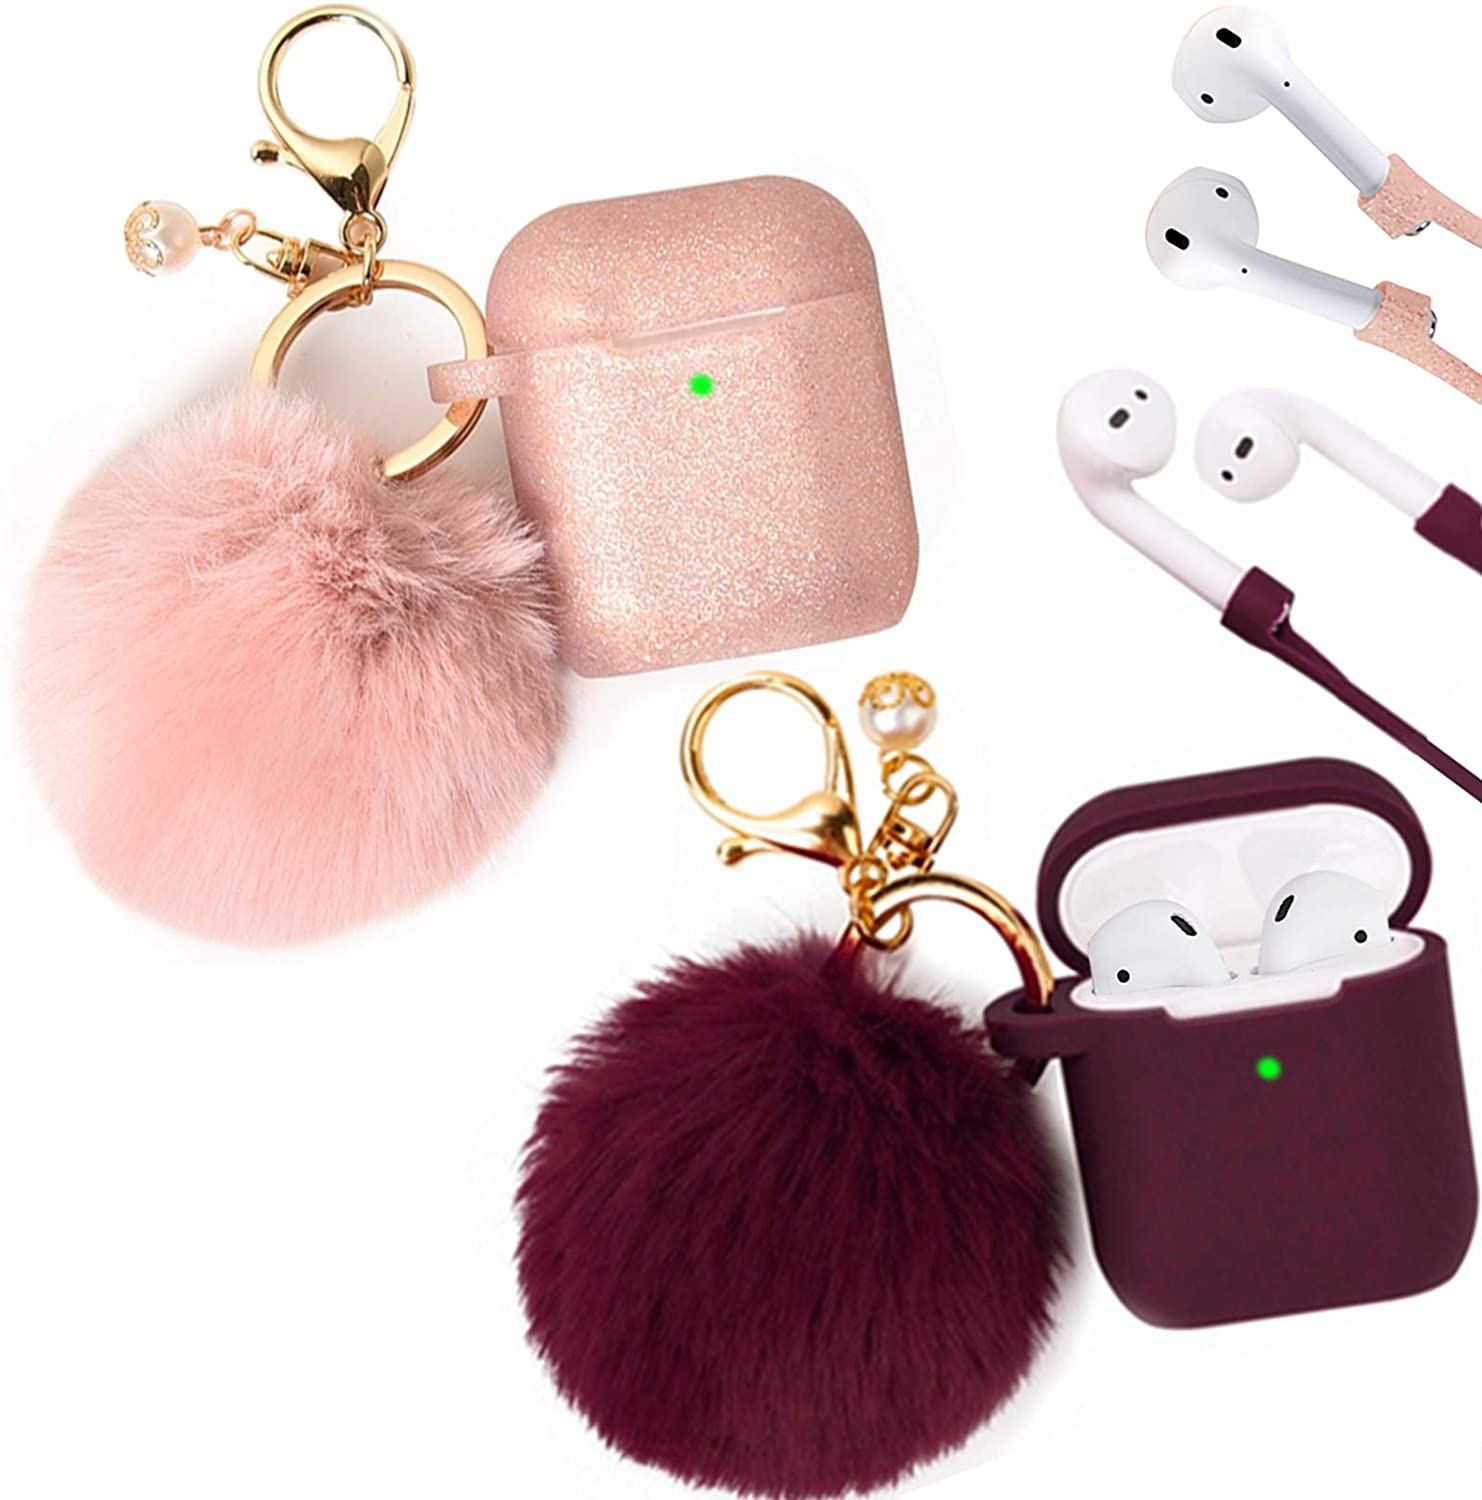 Filoto Case for Airpods, Filoto Airpod Case Cover for Apple Airpods 2&1 Charging Case, Cute AirPods Silicone Soft Case Accessories Keychain/Skin/Pompom/Strap (Burgundy+Rose Gold)